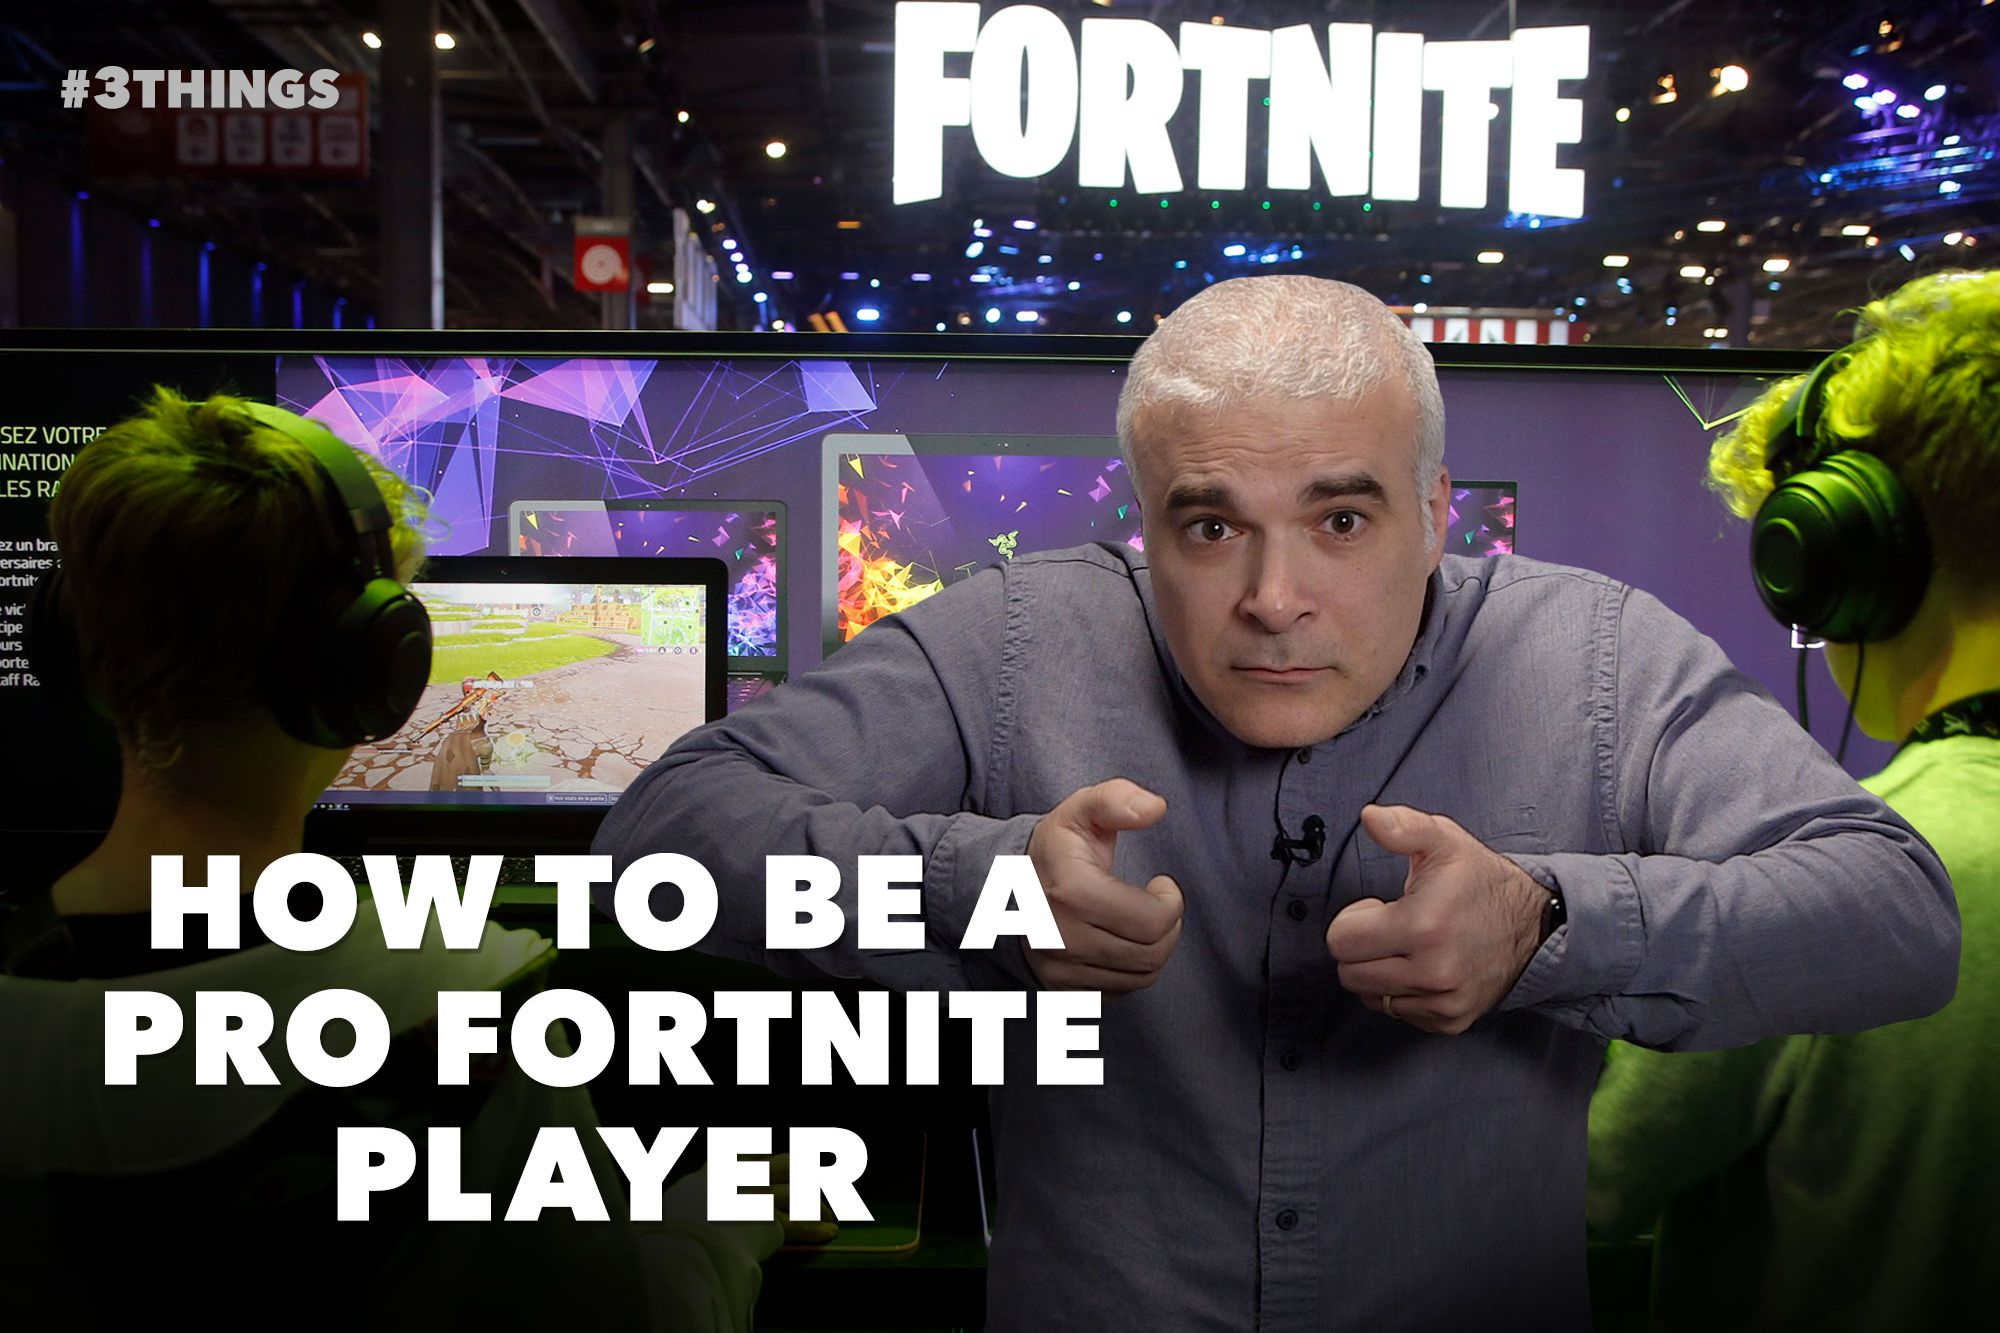 How to Become a Professional Fortnite Player (60-Second Video)